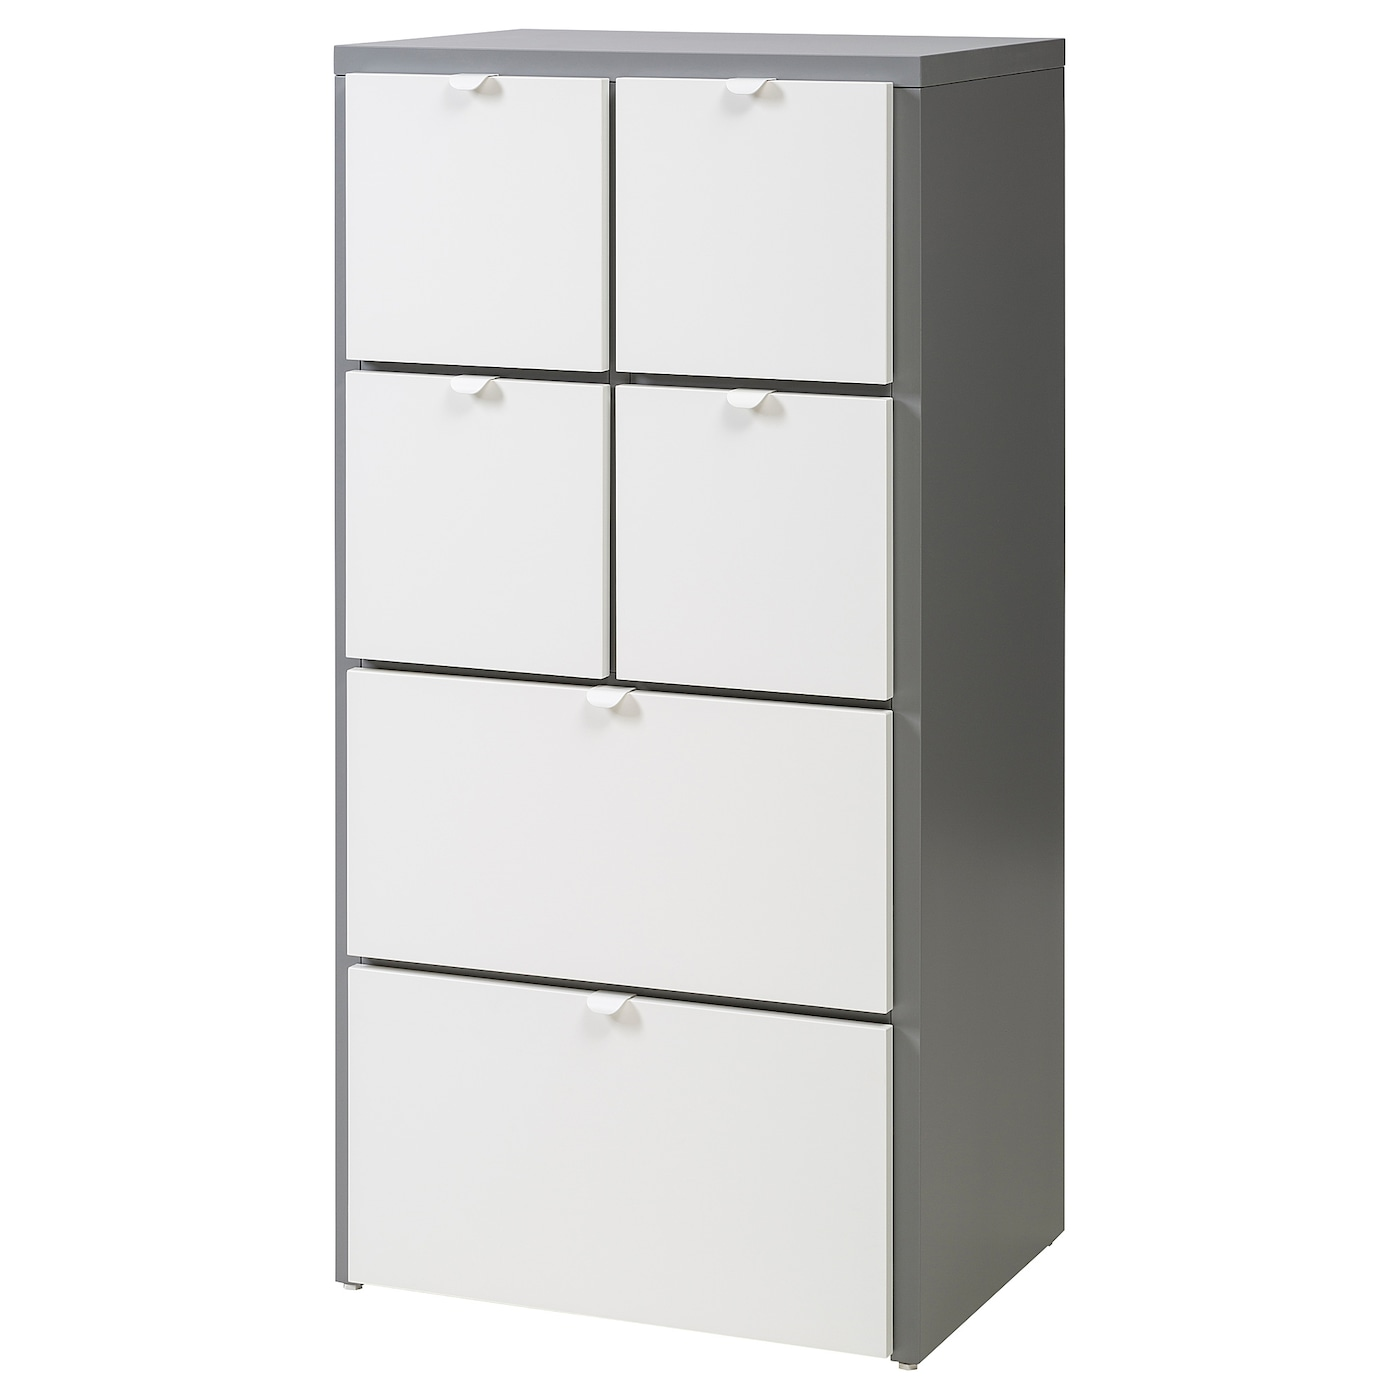 visthus chest of 6 drawers grey white 63x126 cm ikea. Black Bedroom Furniture Sets. Home Design Ideas